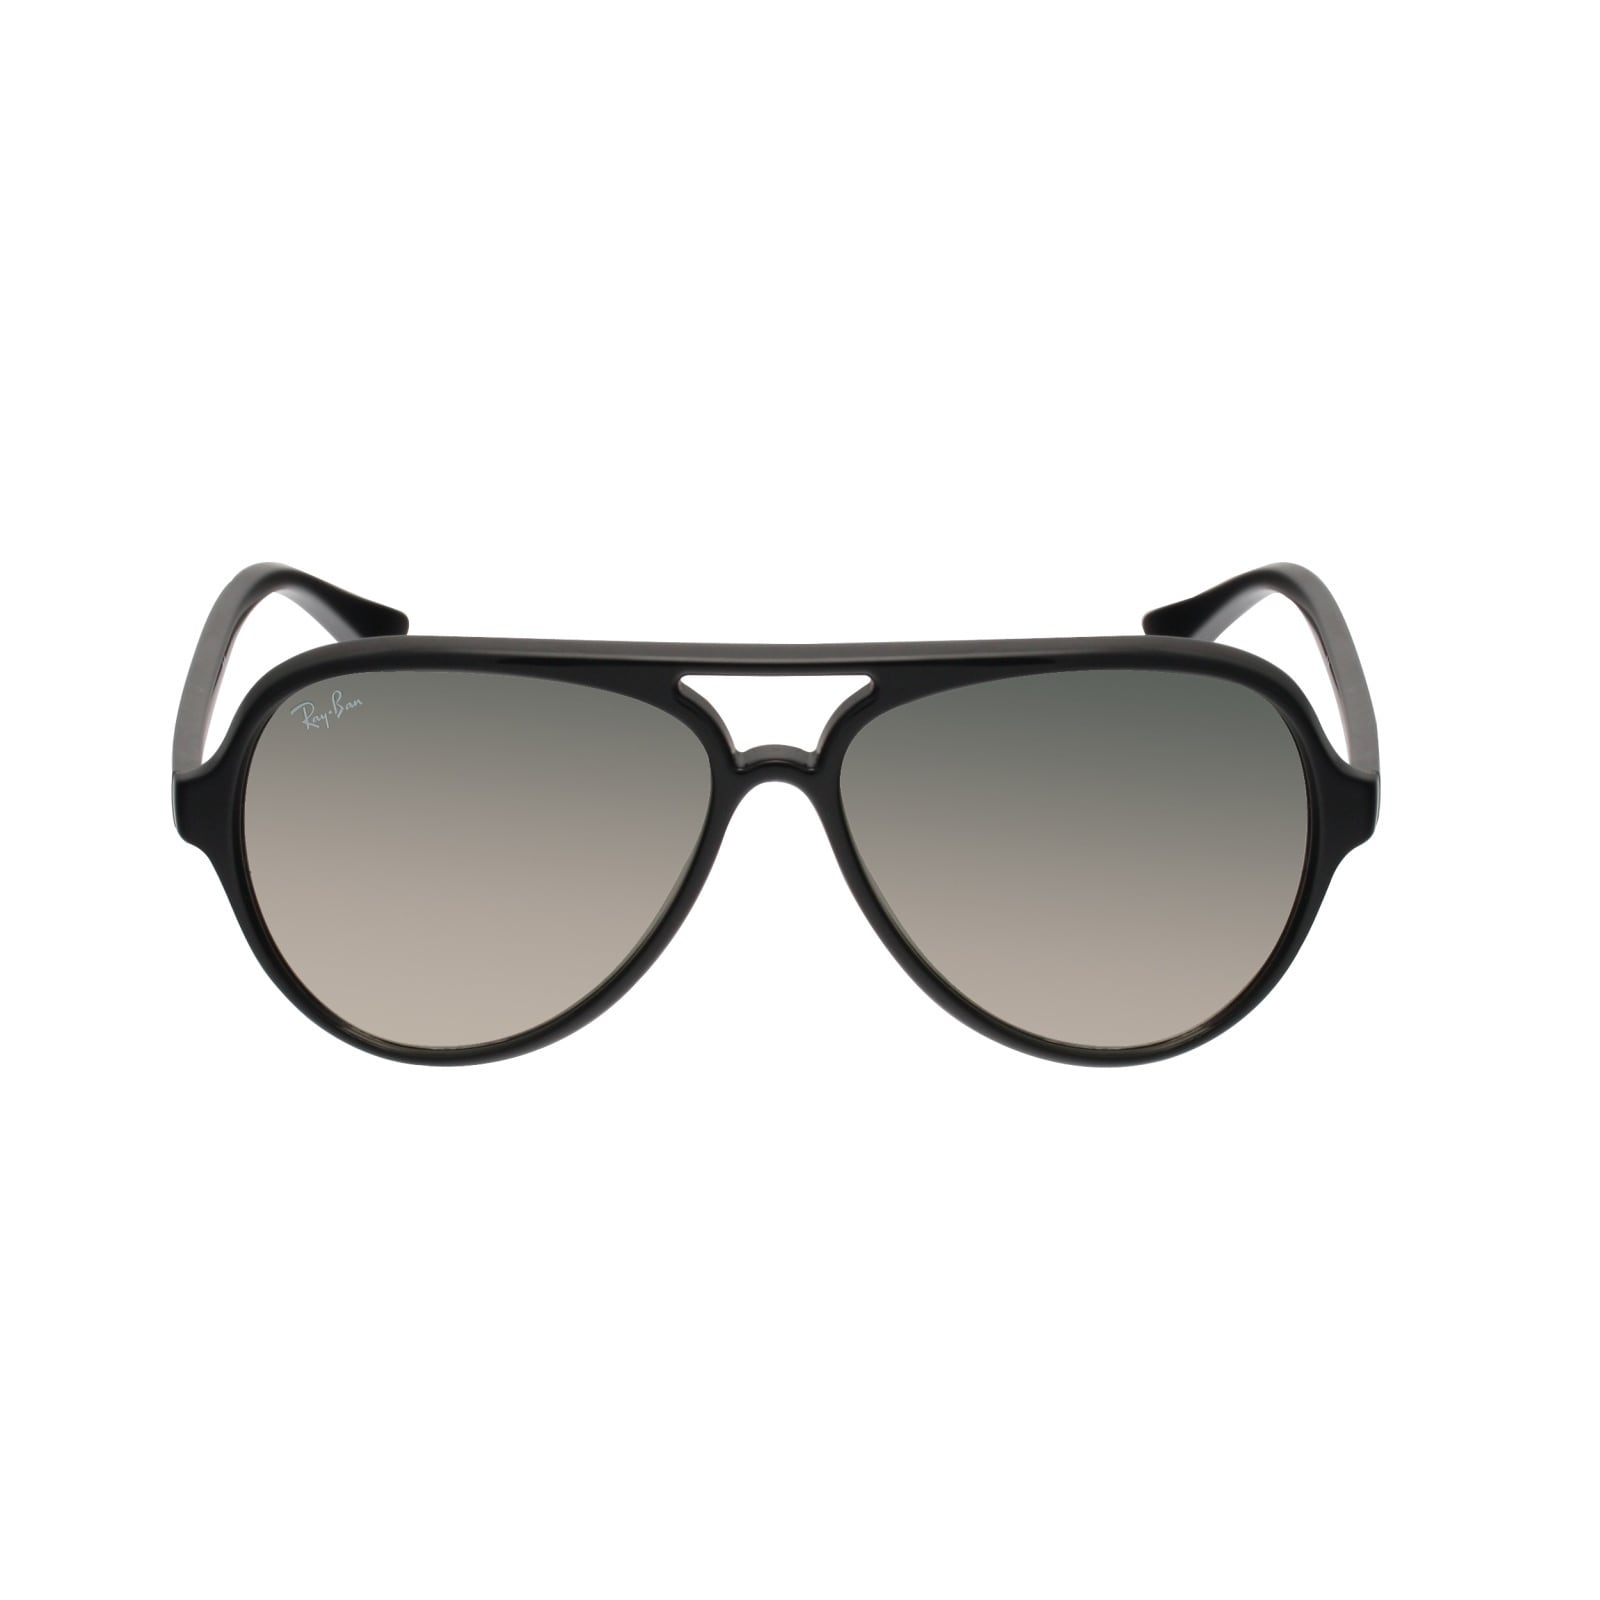 d226852f125 Shop Ray-Ban RB4125 601 32 Cats 5000 Black Frame Light Grey Gradient 59mm  Lens Sunglasses - Free Shipping Today - Overstock - 14329397